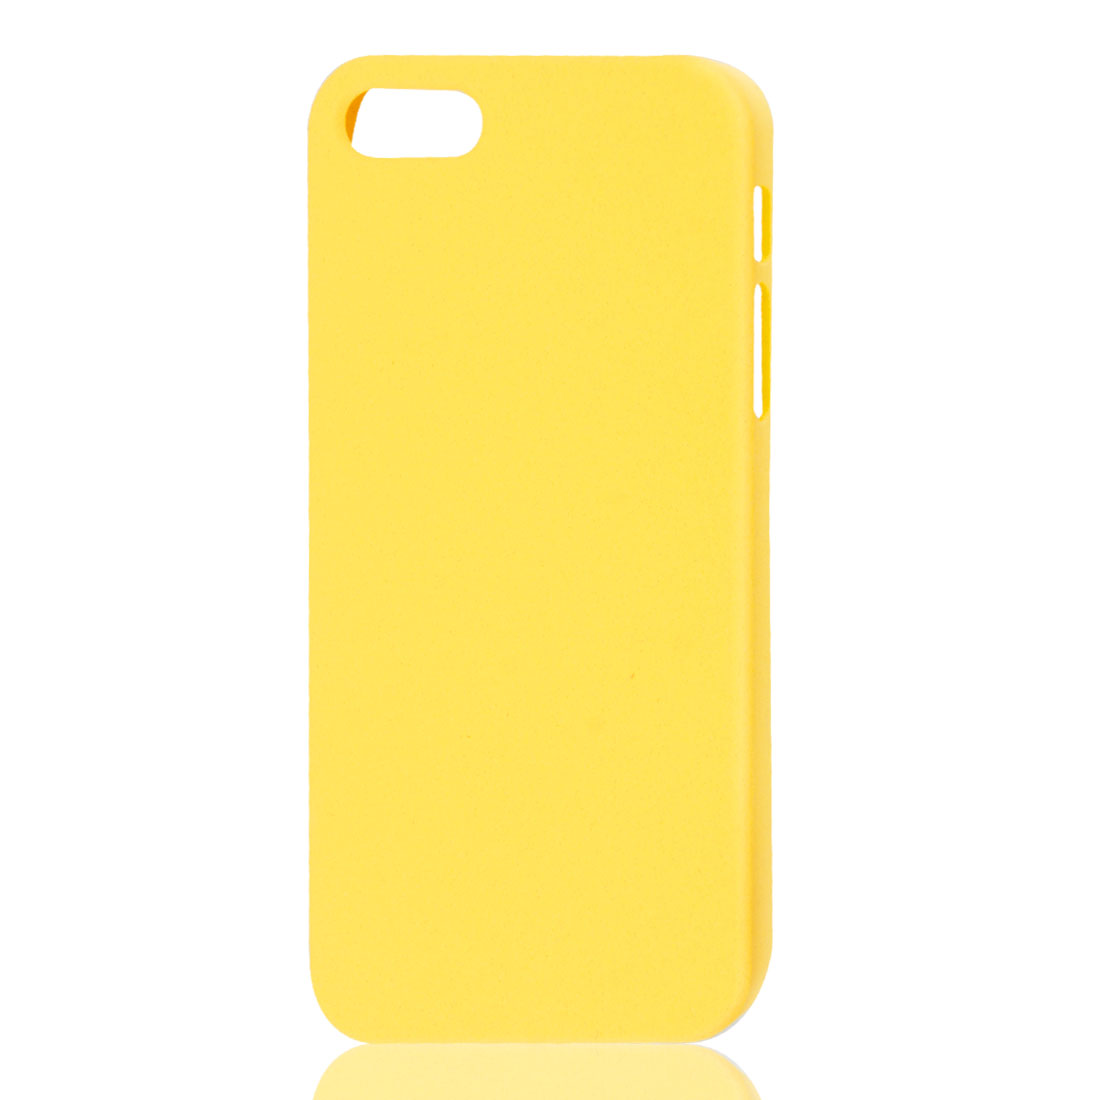 Hard Back Case Protective Cover Yellow for iPhone 5 5G 5th